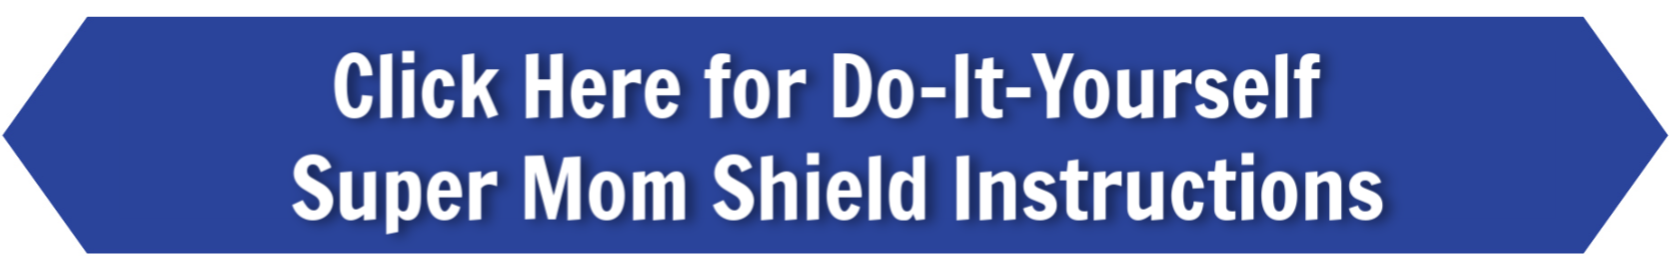 Shield_Instructions_Button.png